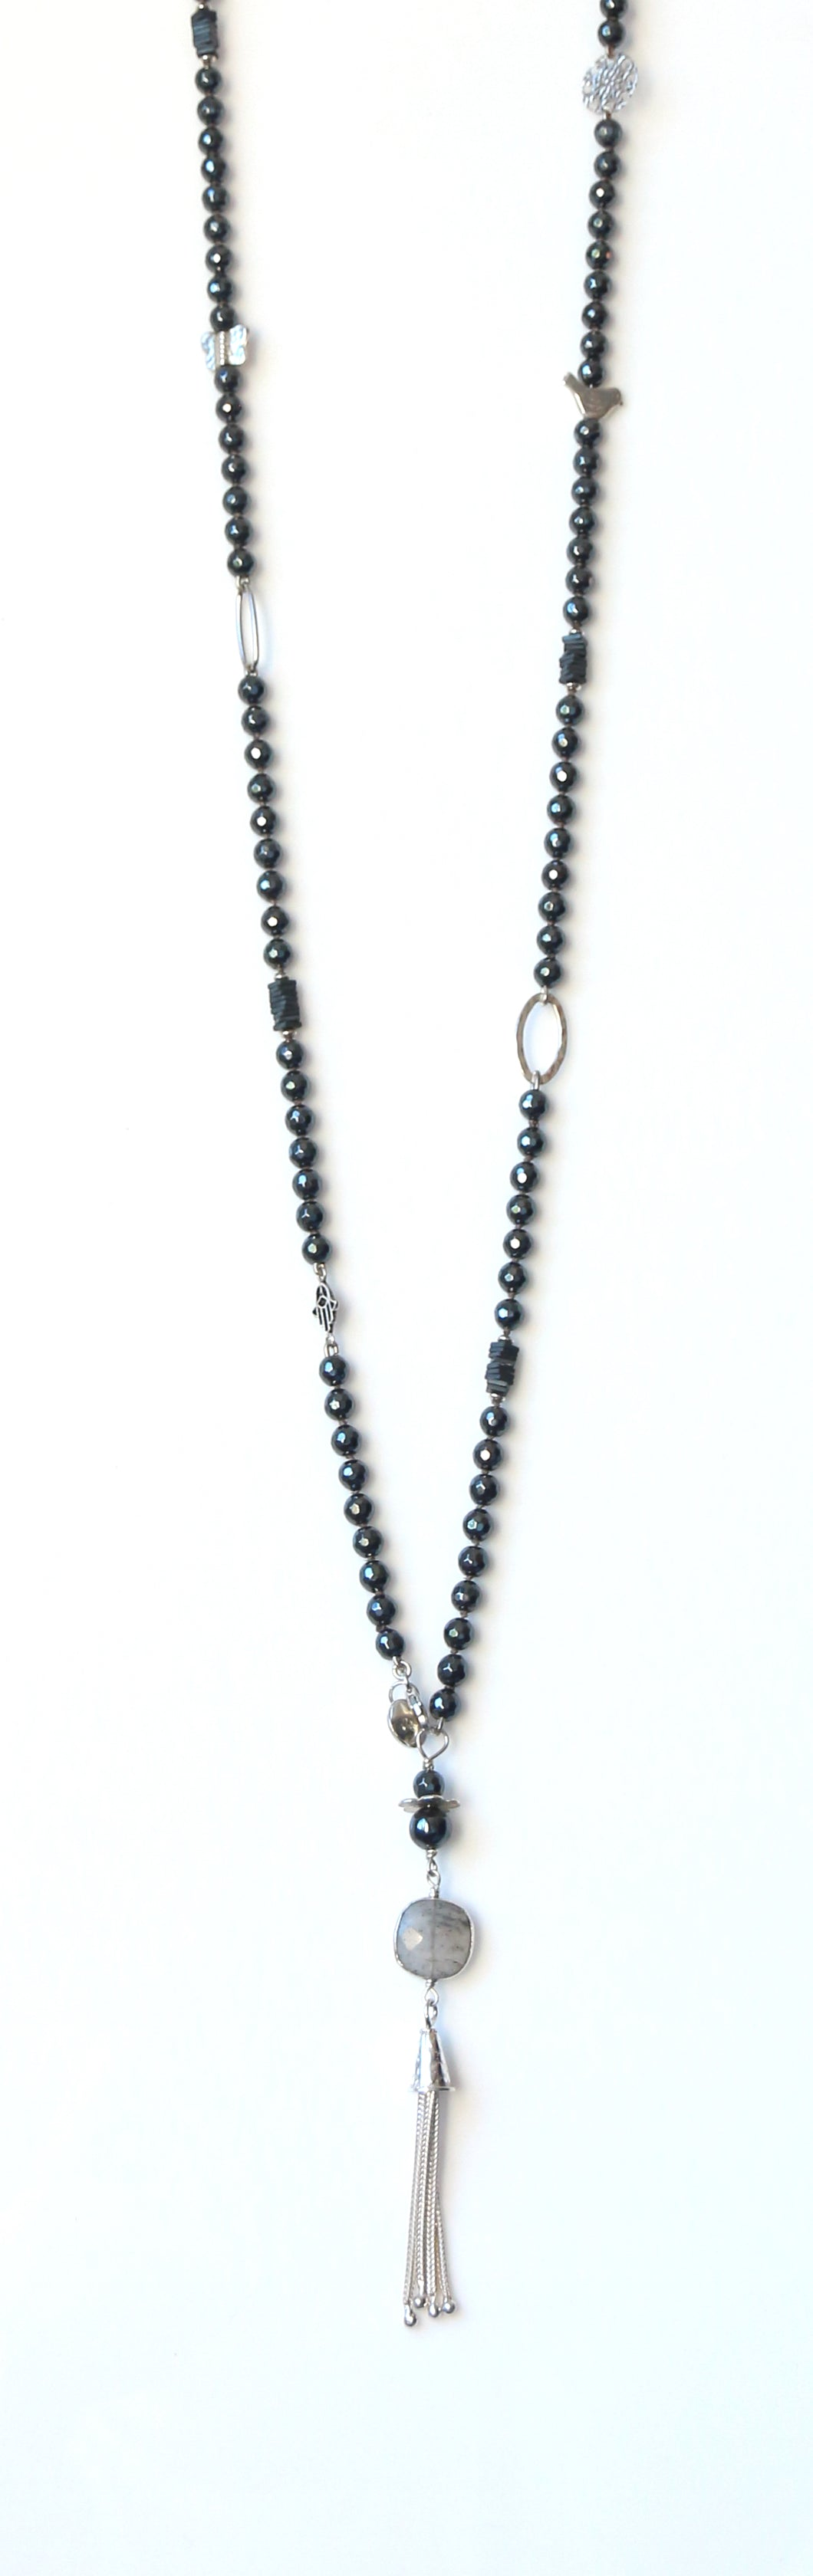 Australian Handmade Grey Long Tassel Necklace with Hematite and Sterling Silver Charms